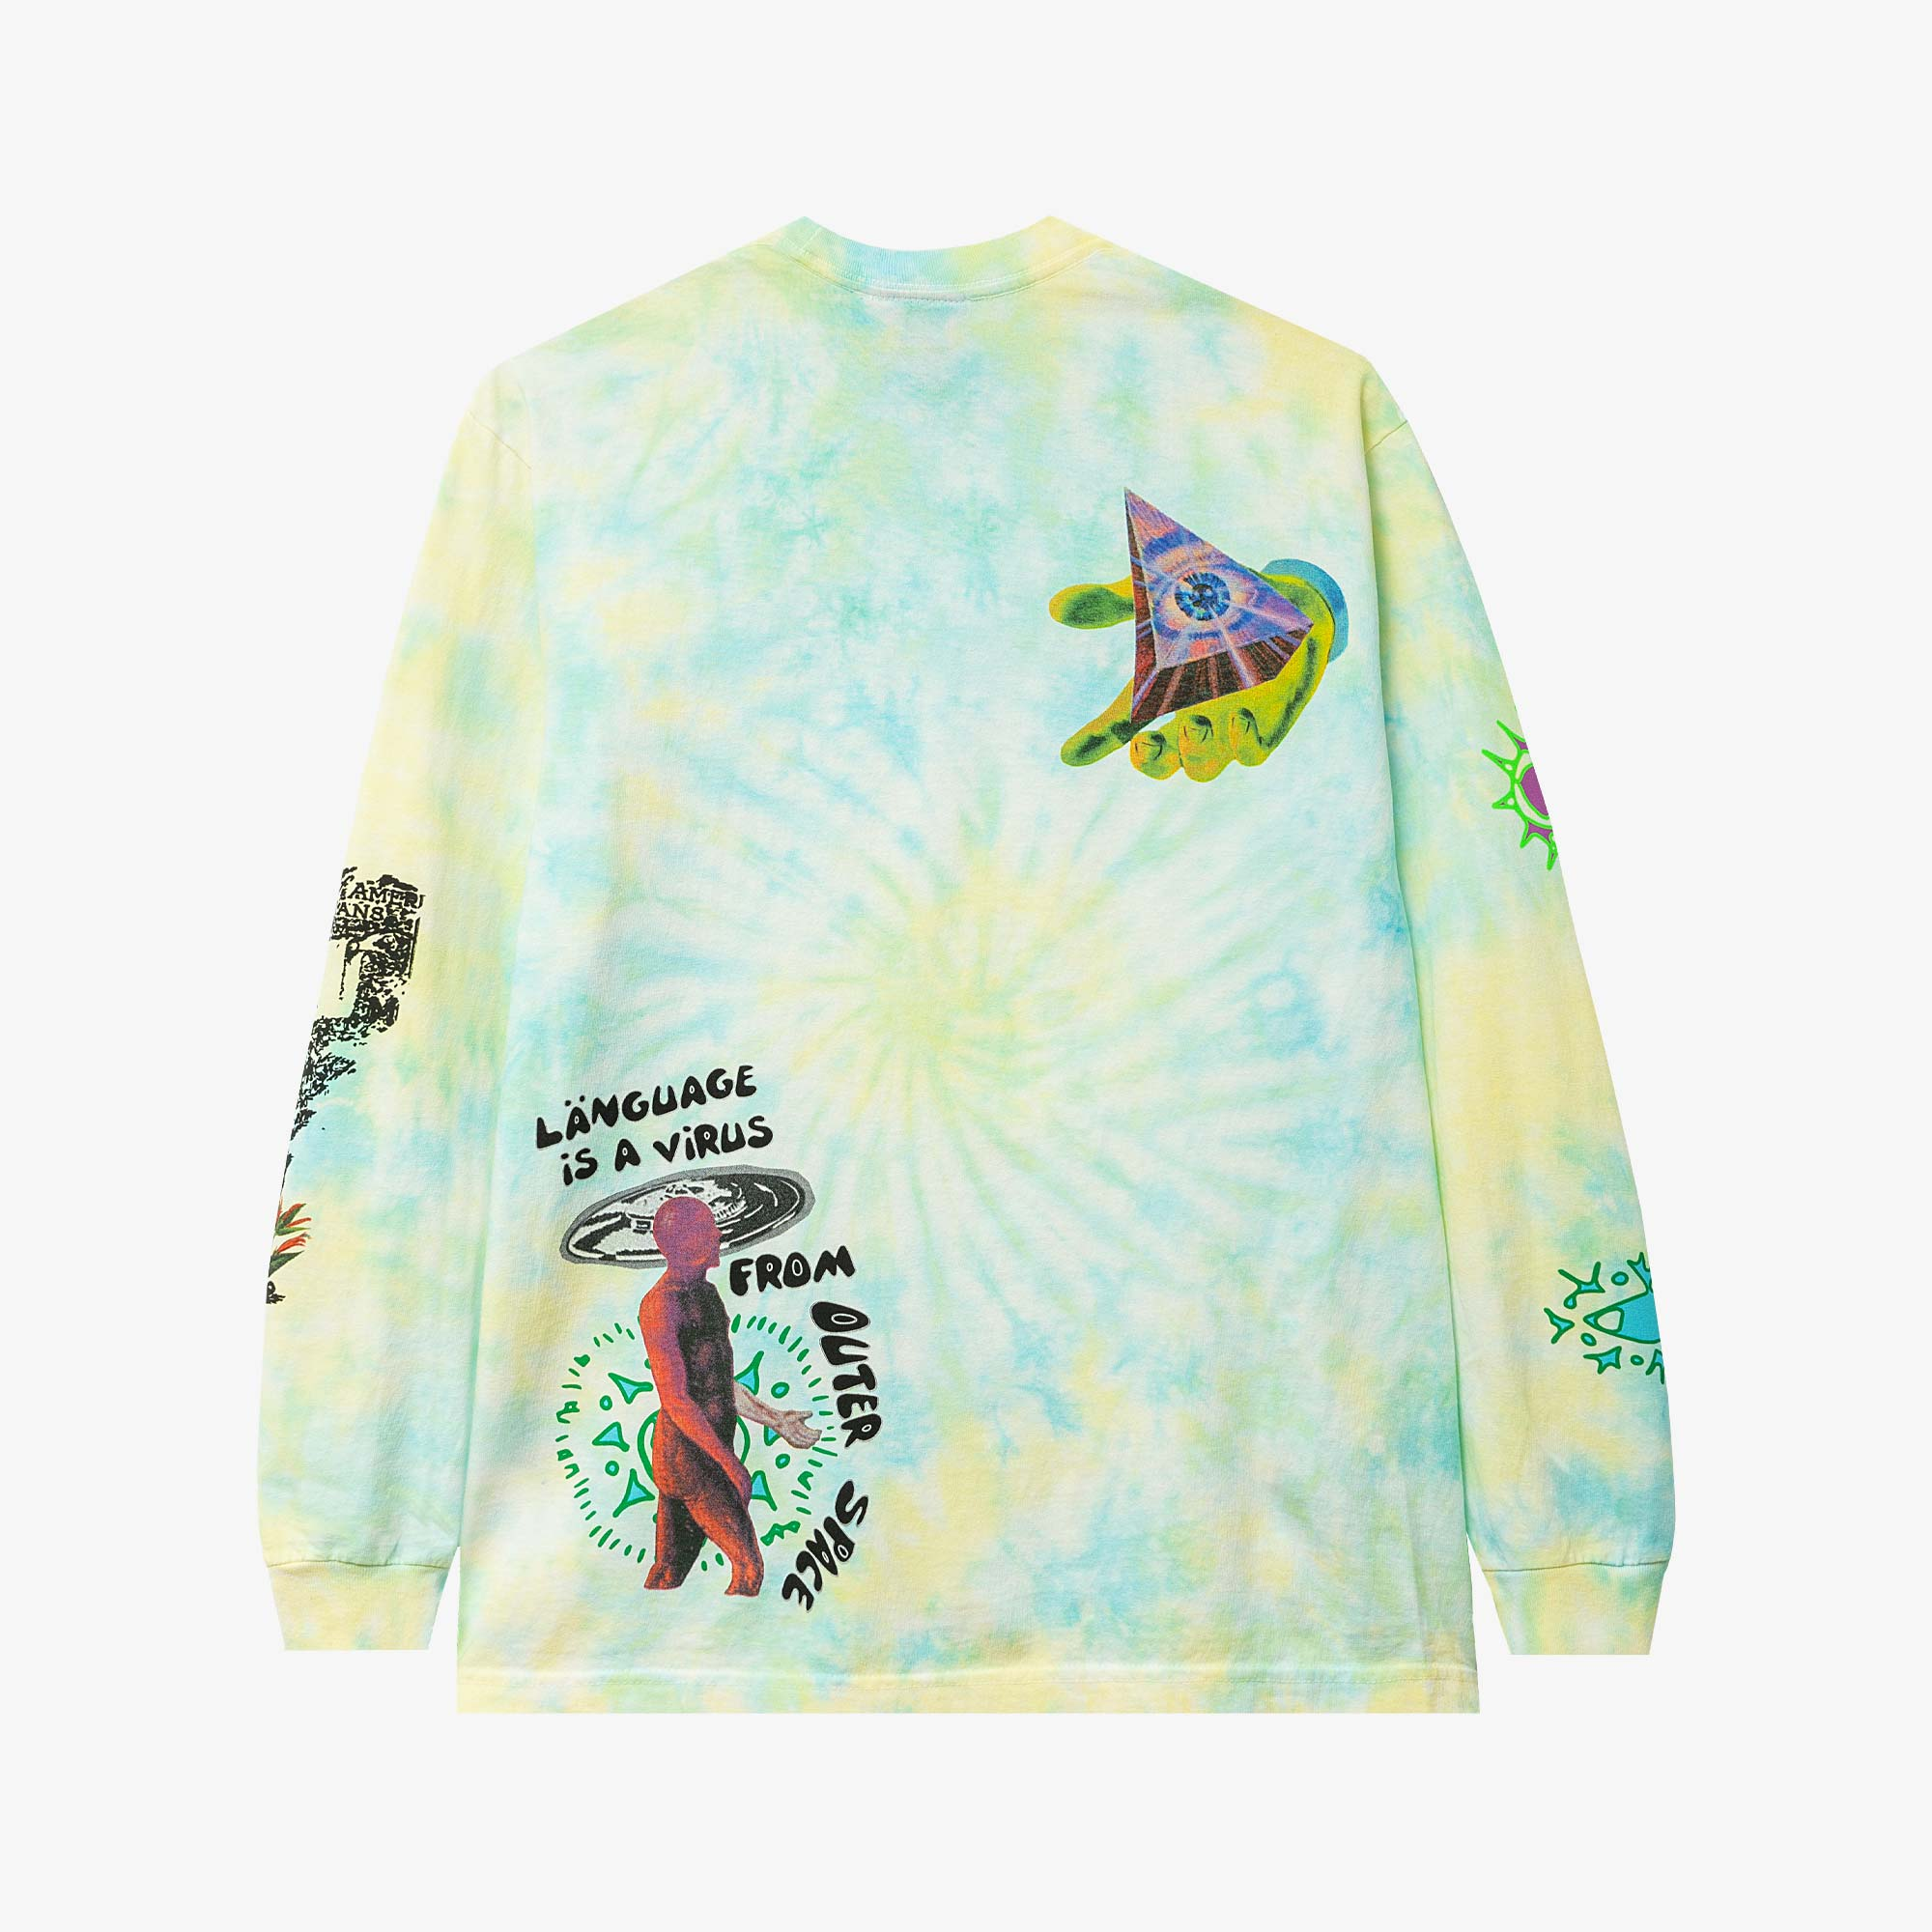 Real Bad Man From Outer Space LS Tee - Aqua / Yellow 3